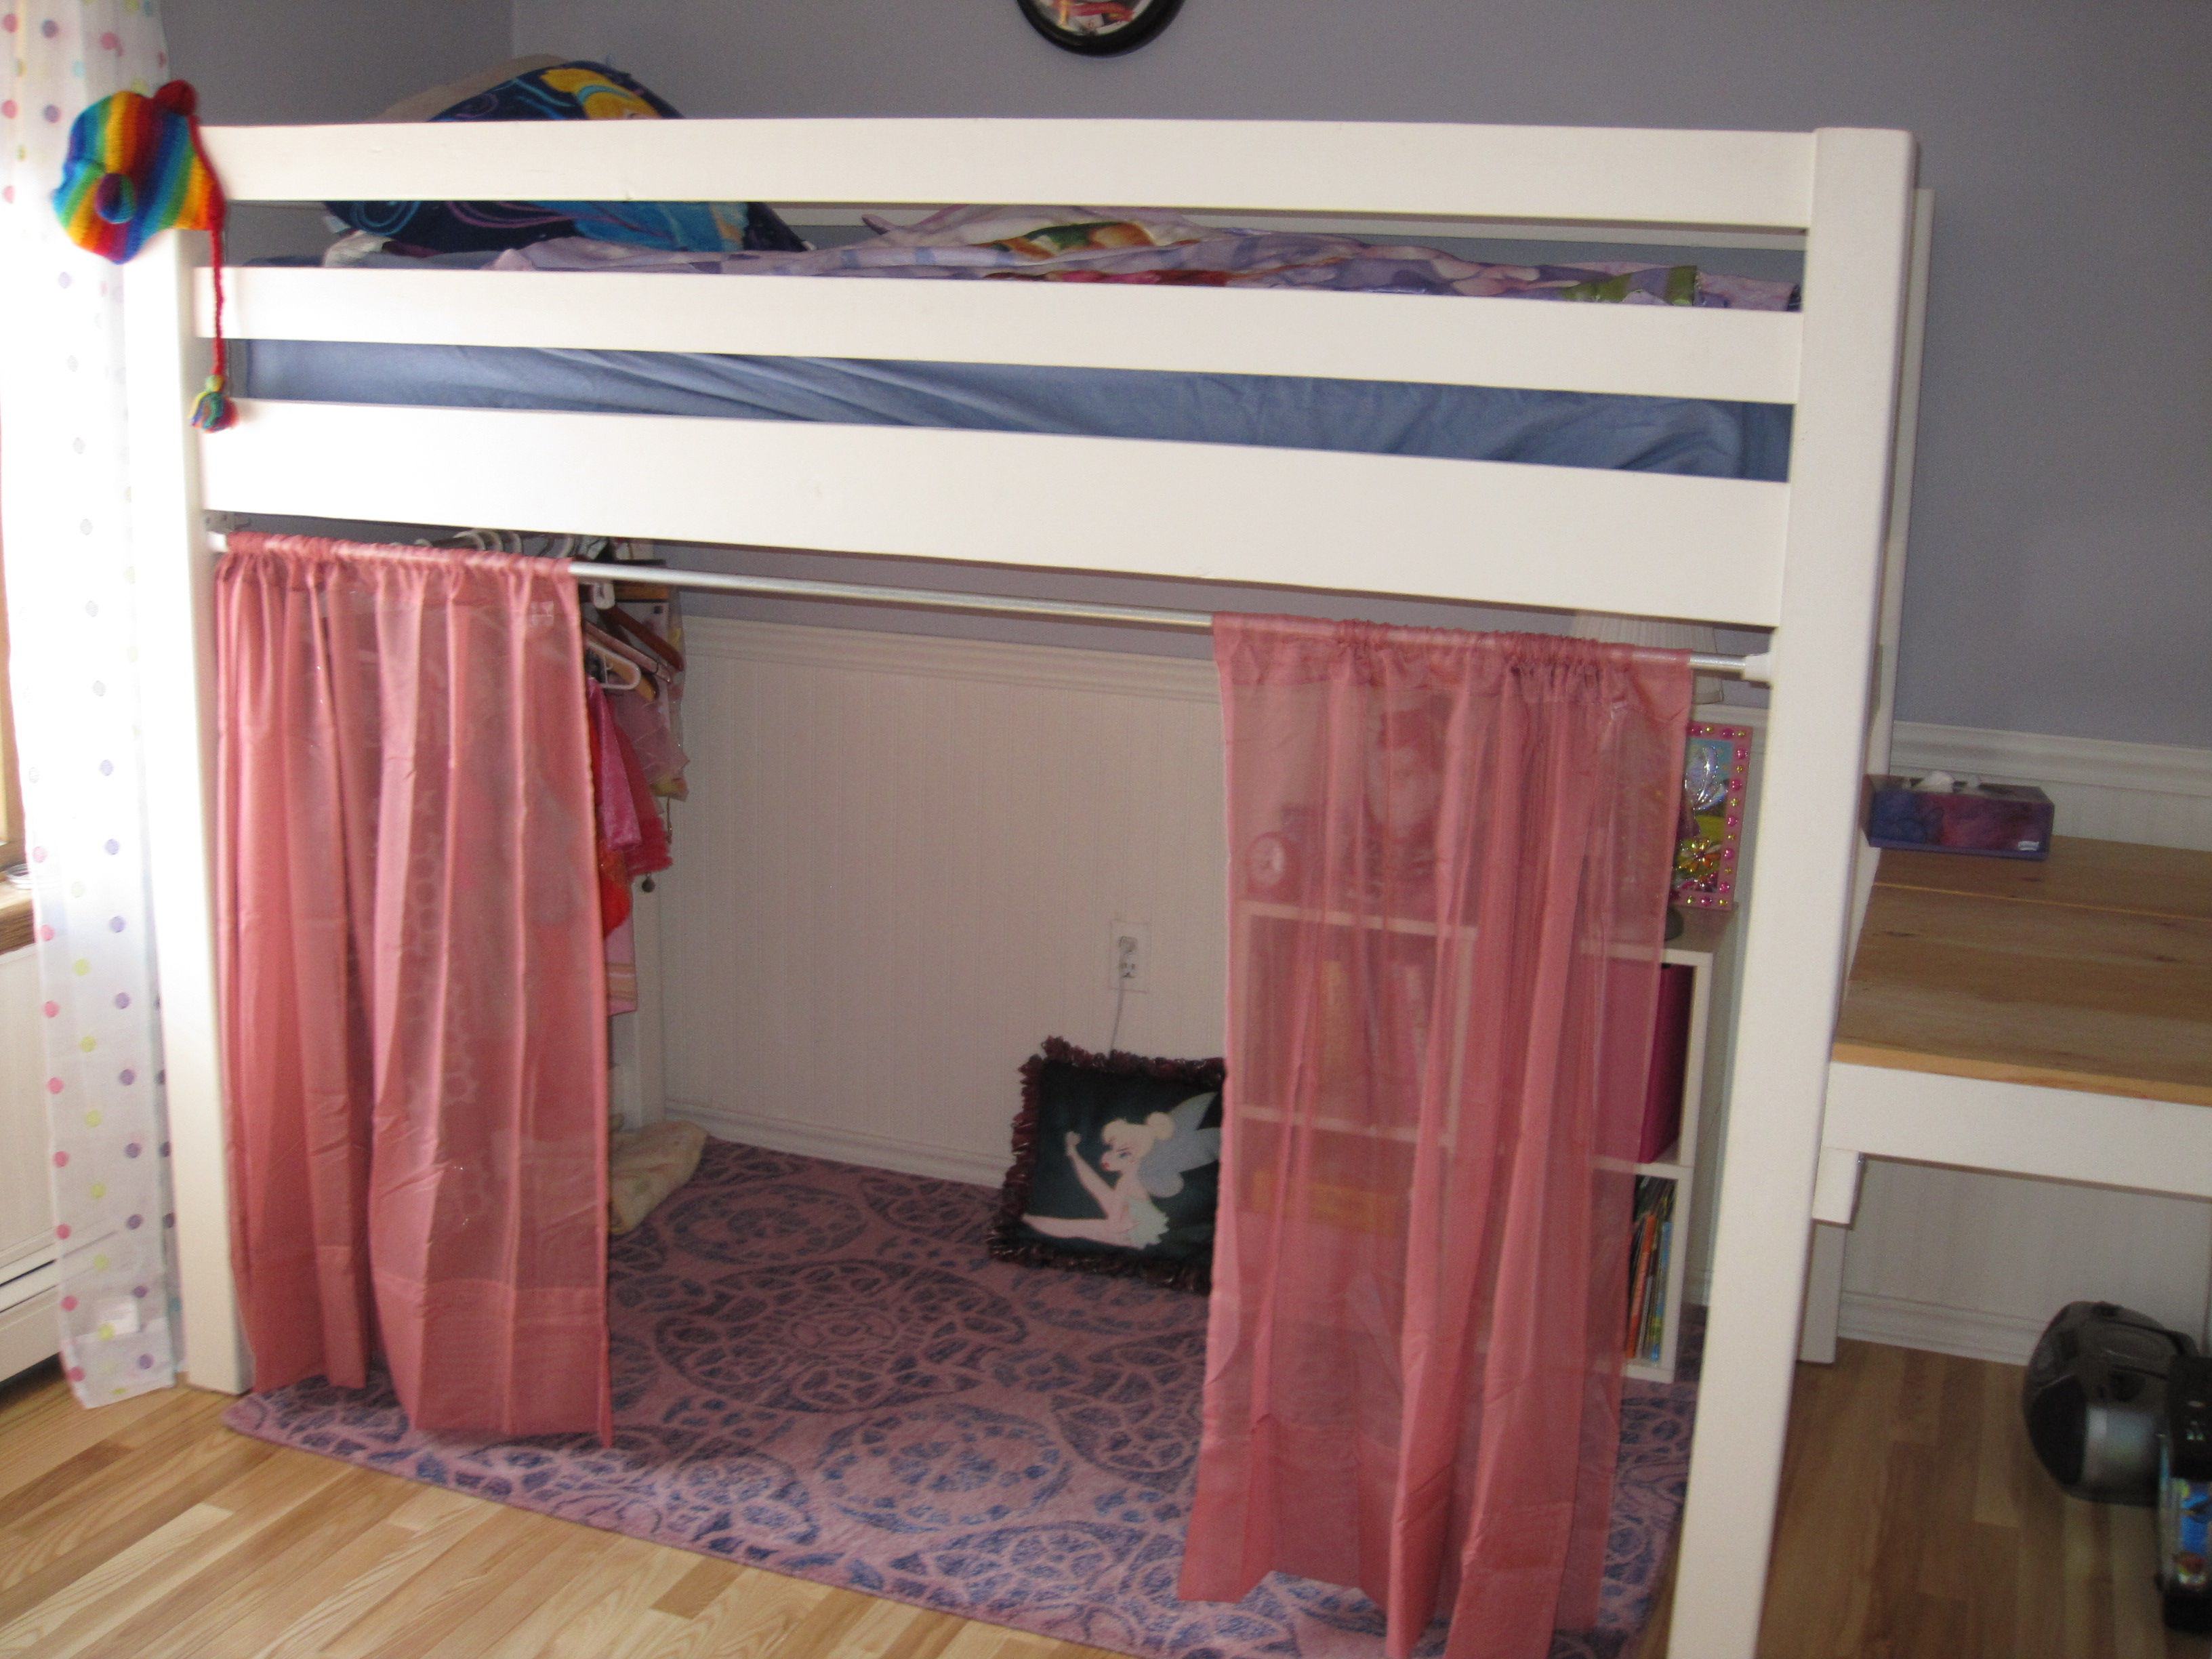 Curtain Bed Divider Design Ideas With Bunk Curtains & loft bed curtains how to make | Gopelling.net